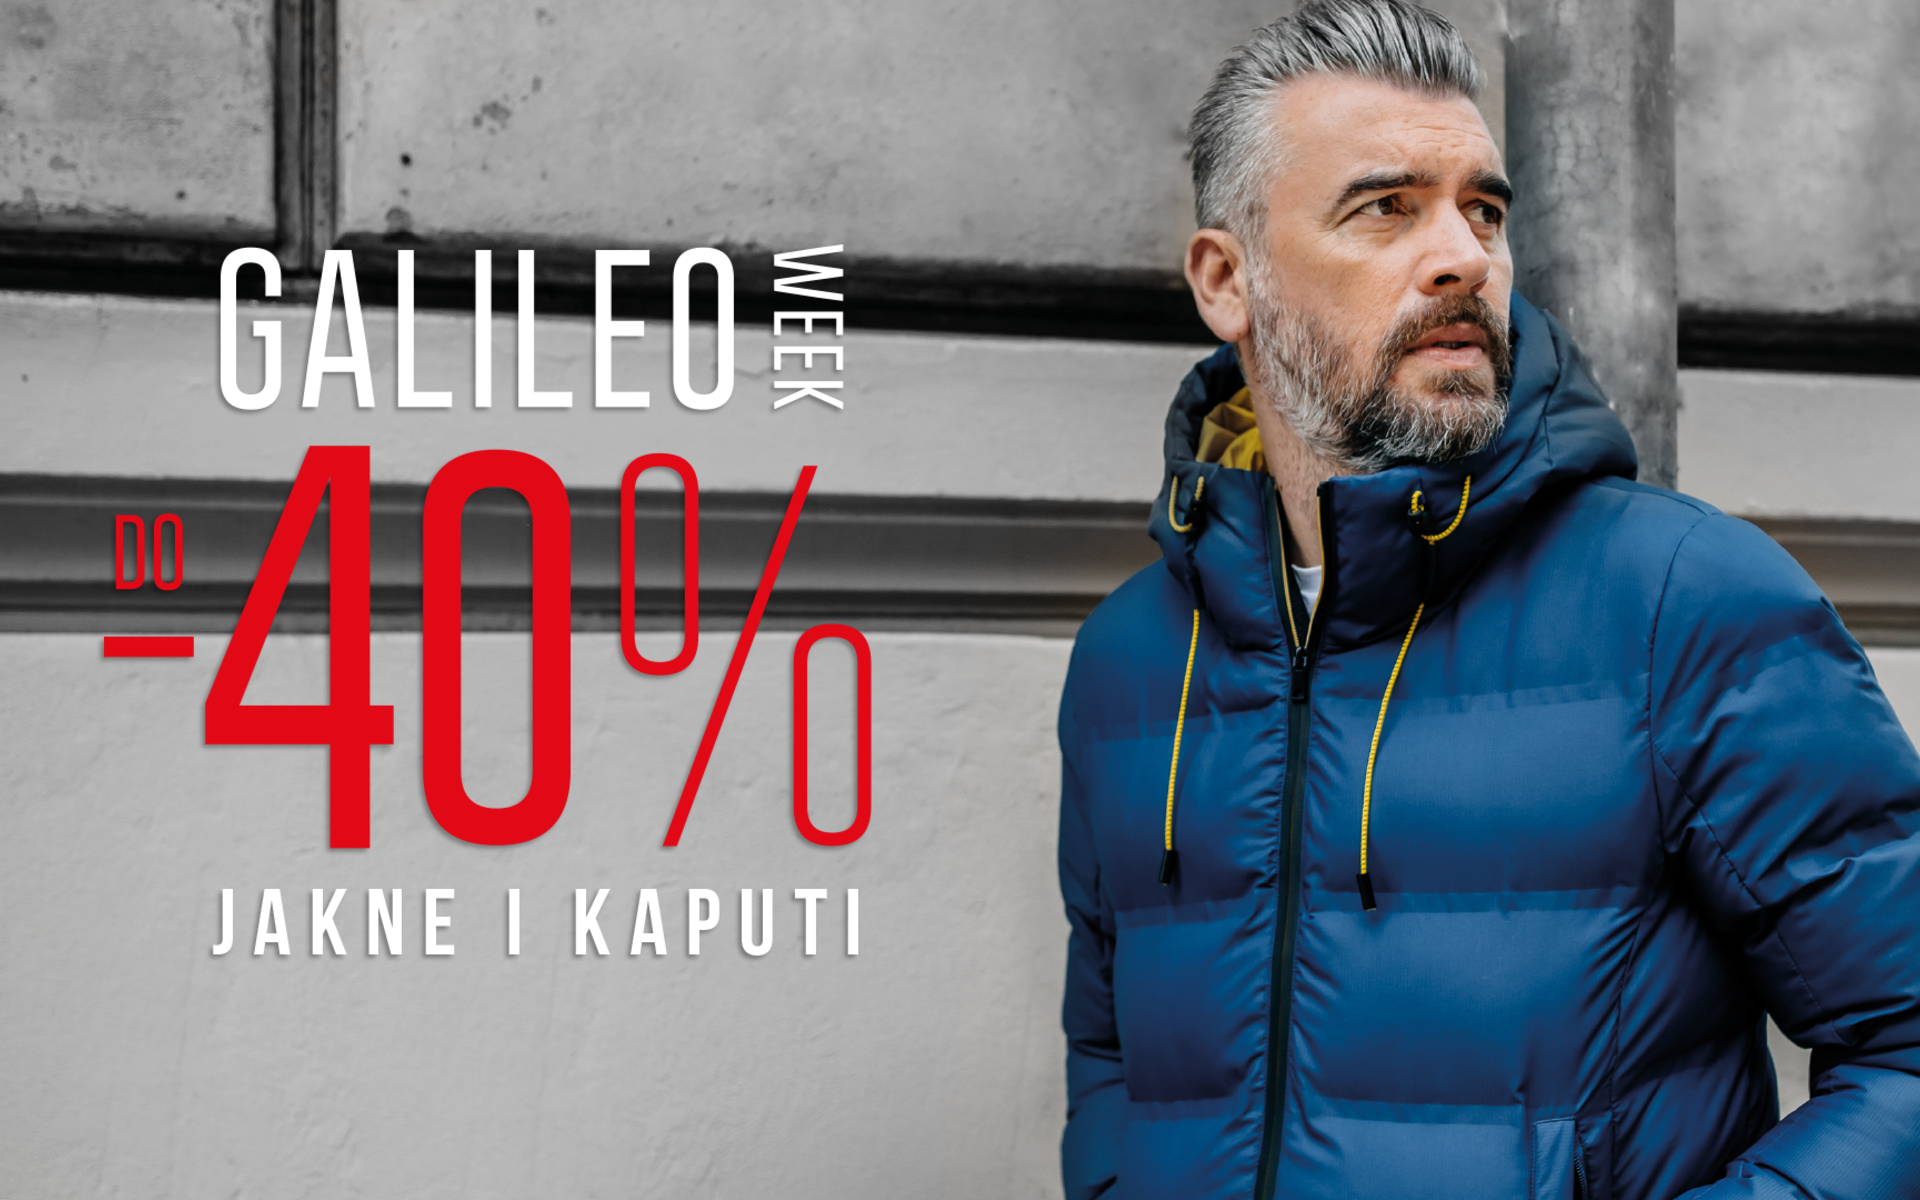 Galileo week do -40% na jakne i kapute!